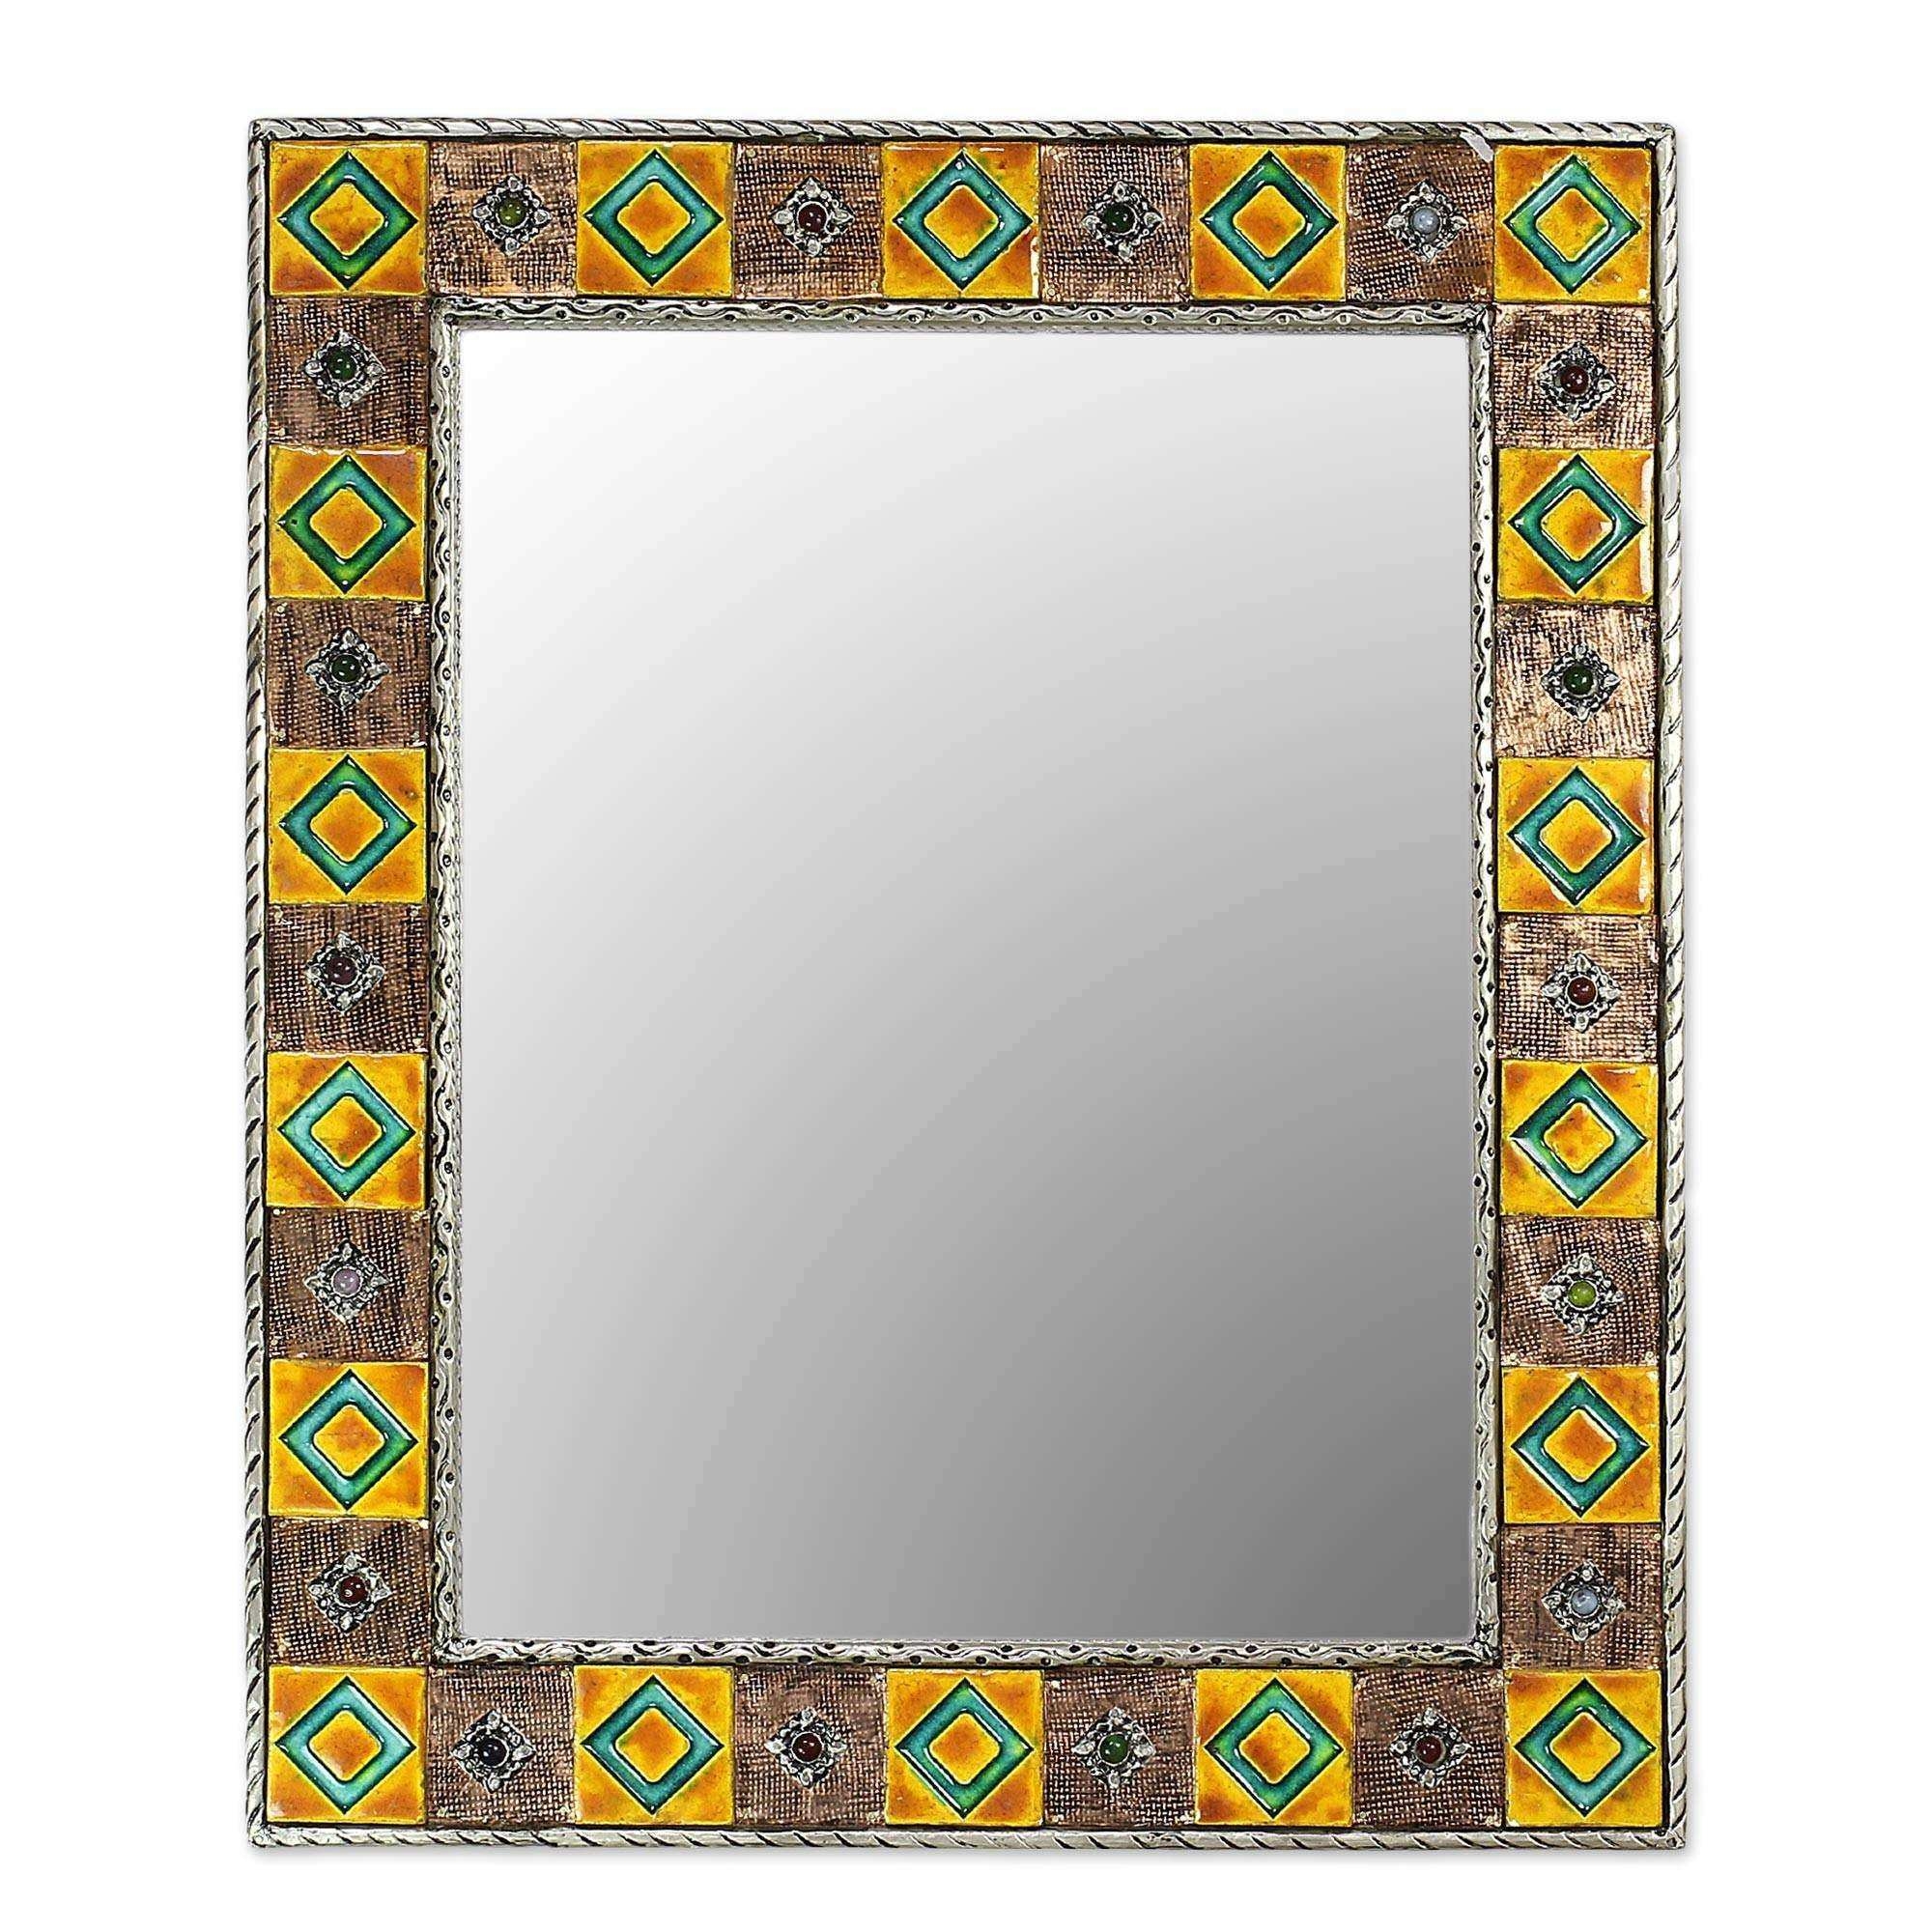 CERAMIC MIRRORS Ceramic Mirror Collection at NOVICA